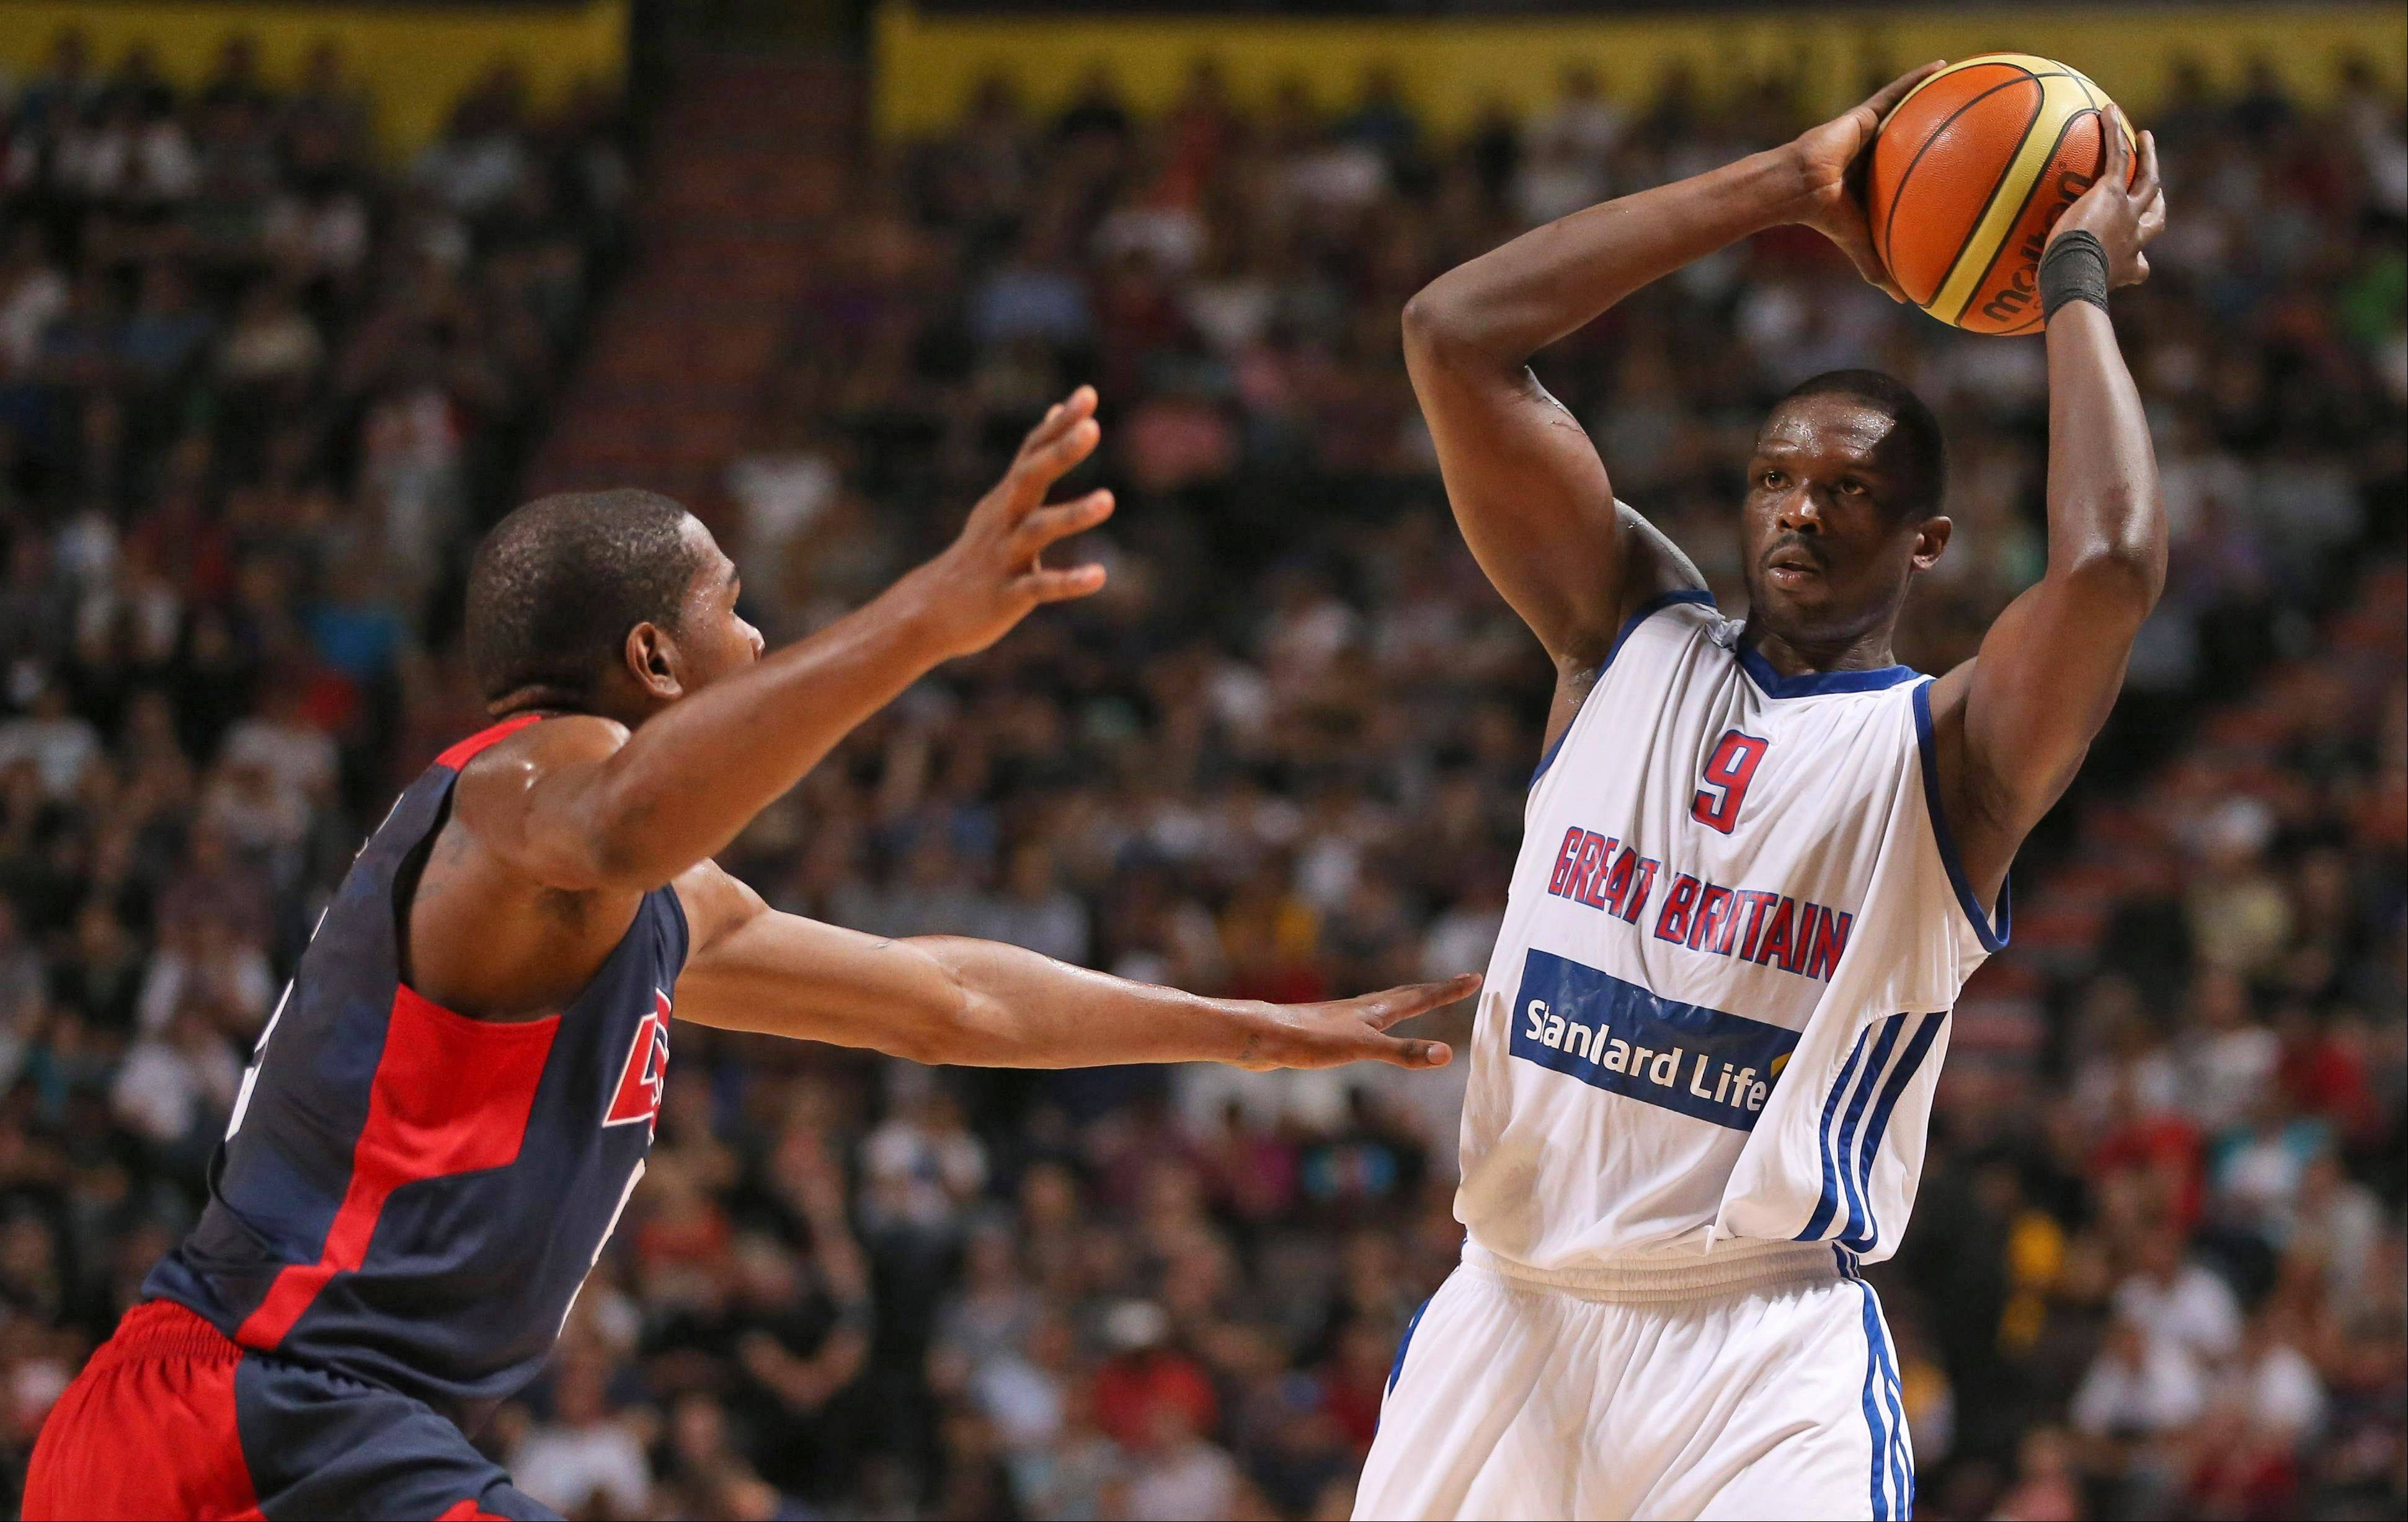 The Great Britain's Luol Deng, right, looks for a pass under pressure from USA's Kevin Durant Thursday against the USA at the Manchester Arena,